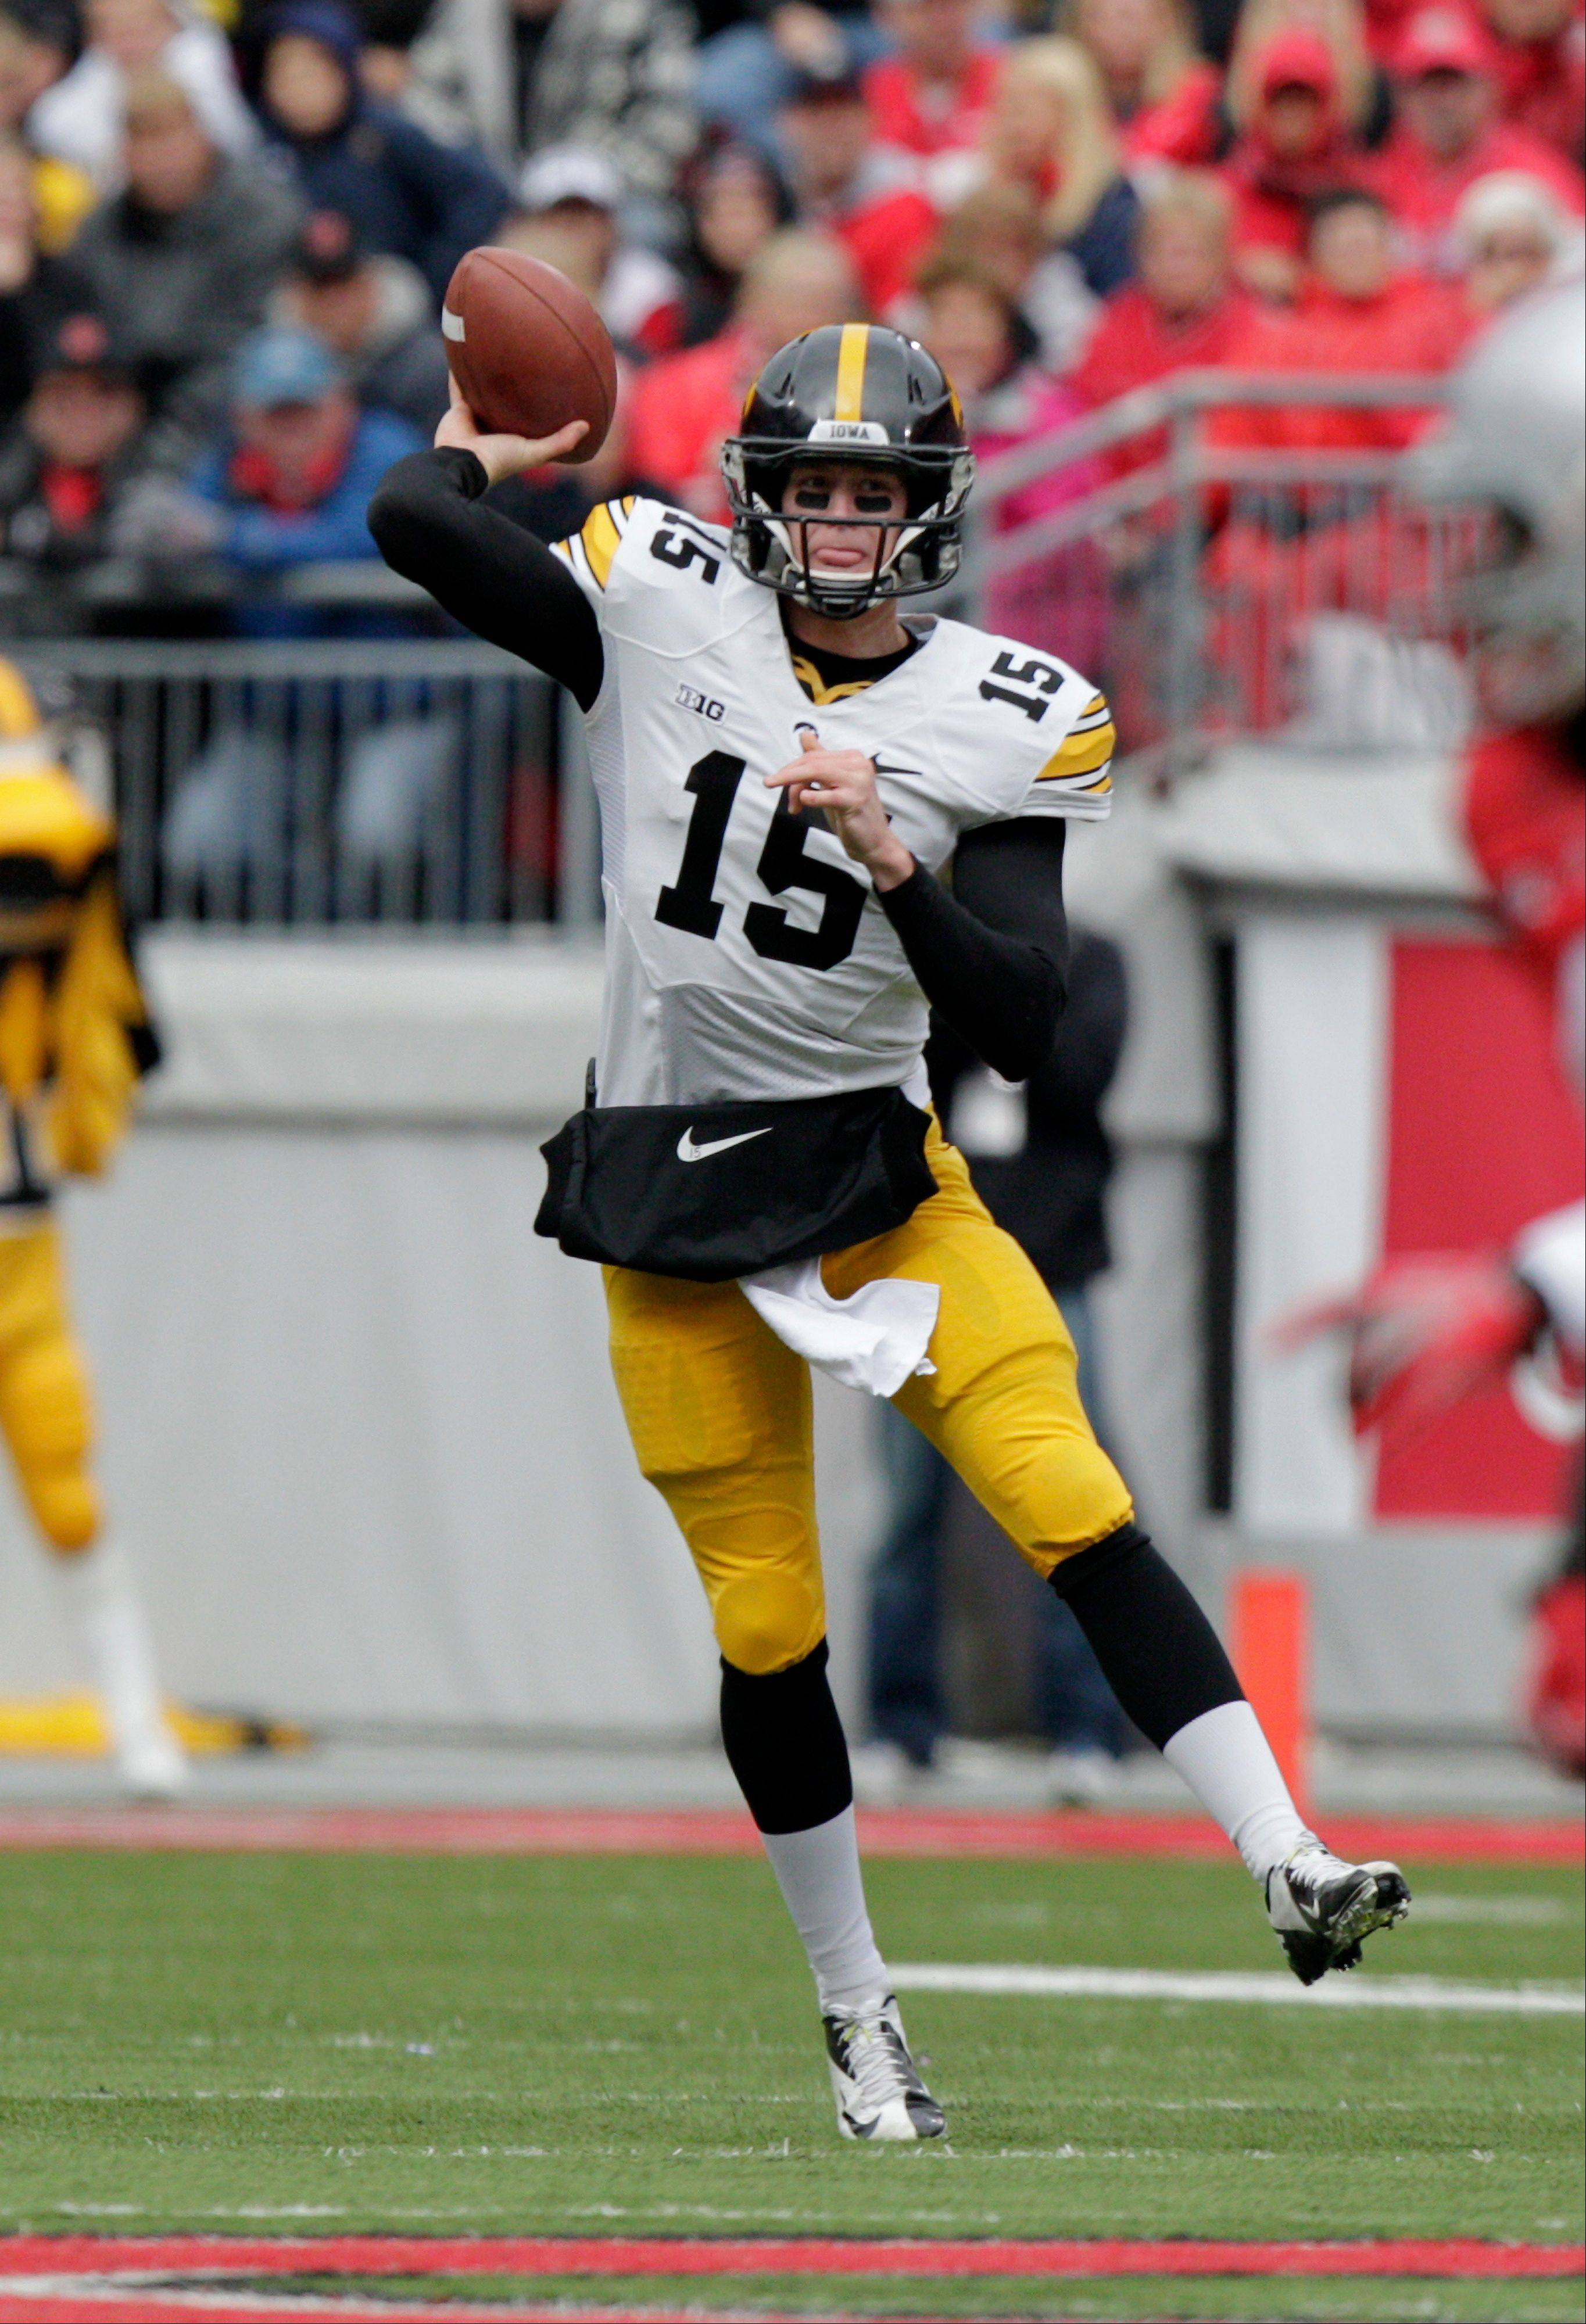 Iowa quarterback Jake Rudock threw for 2,281 yards and 18 TDs in his first year as the Hawkeyes' starter.